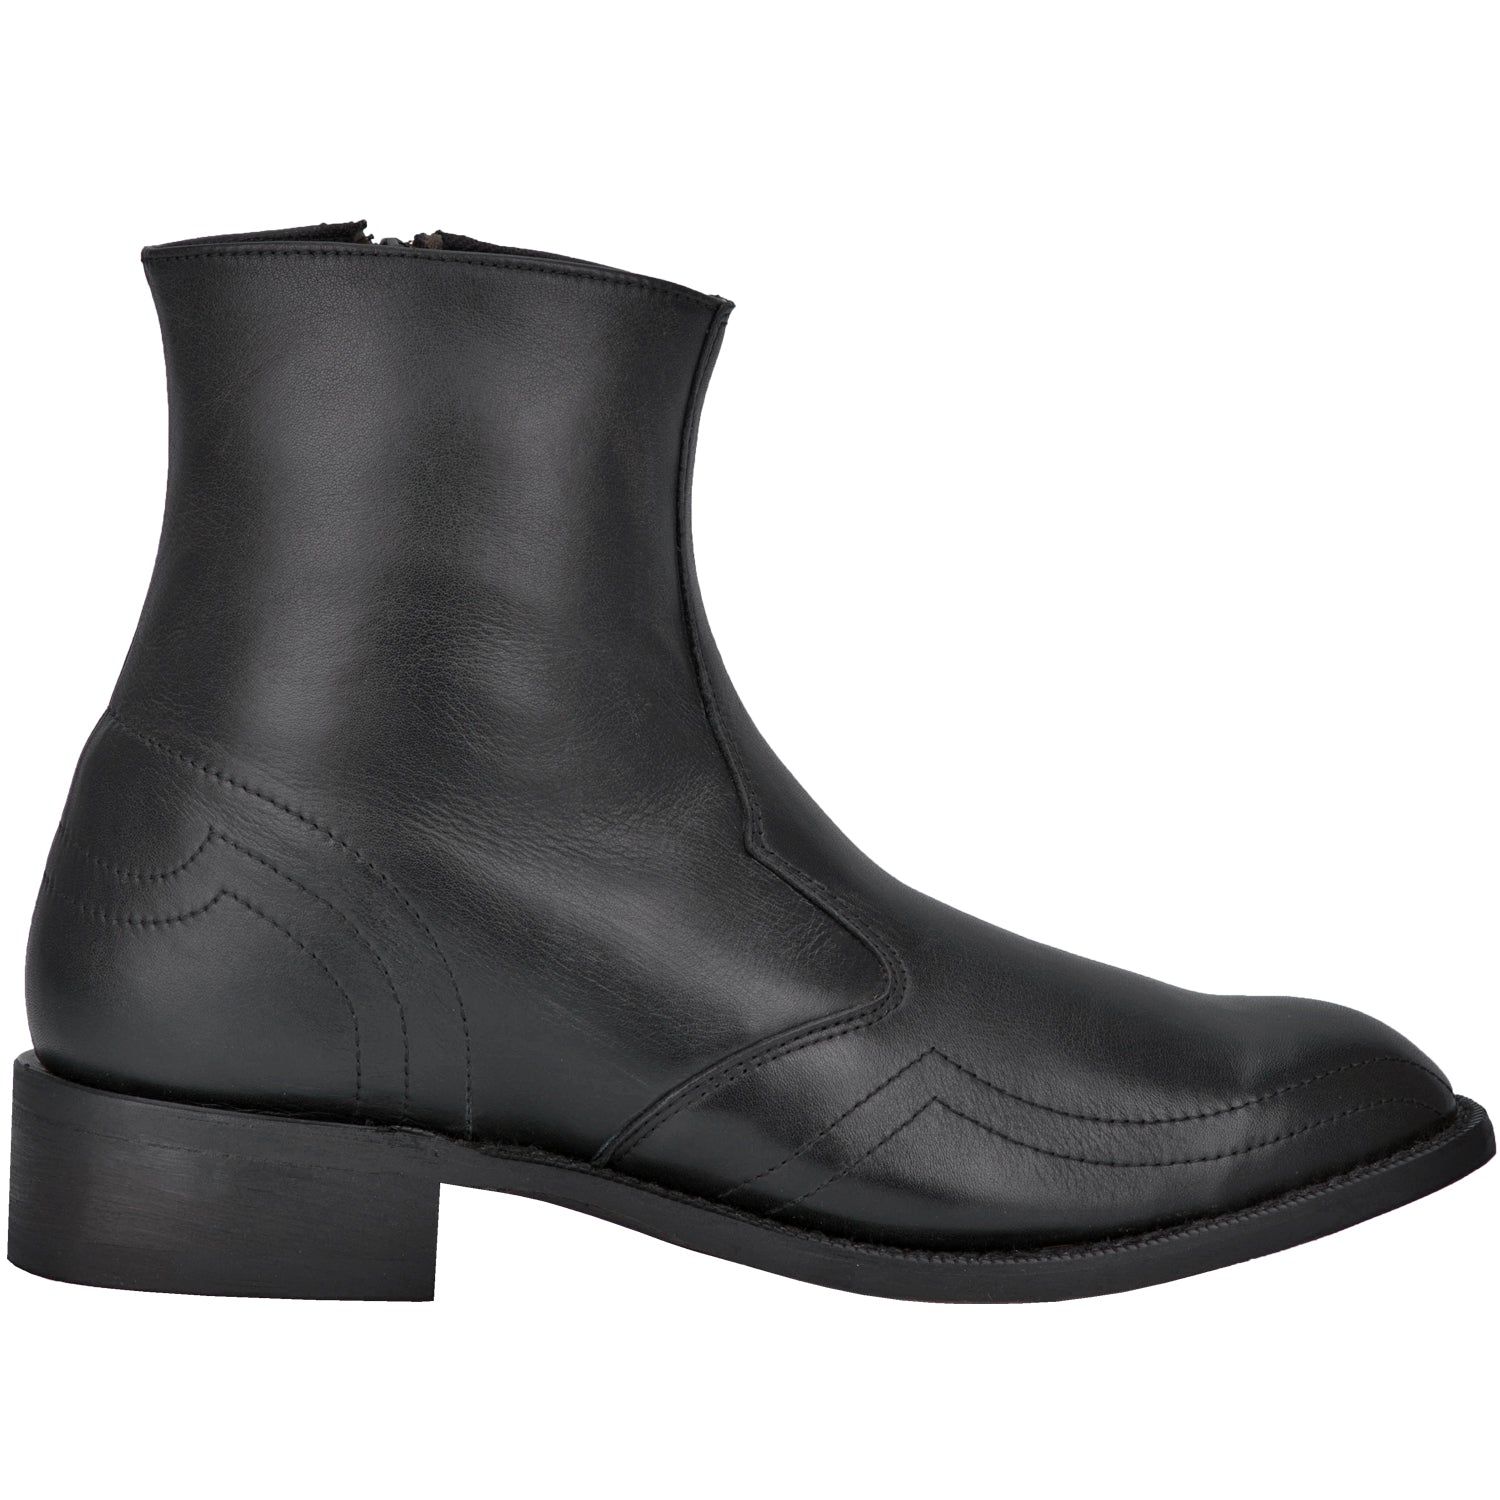 HOXIE LEATHER BOOT 4196605034538